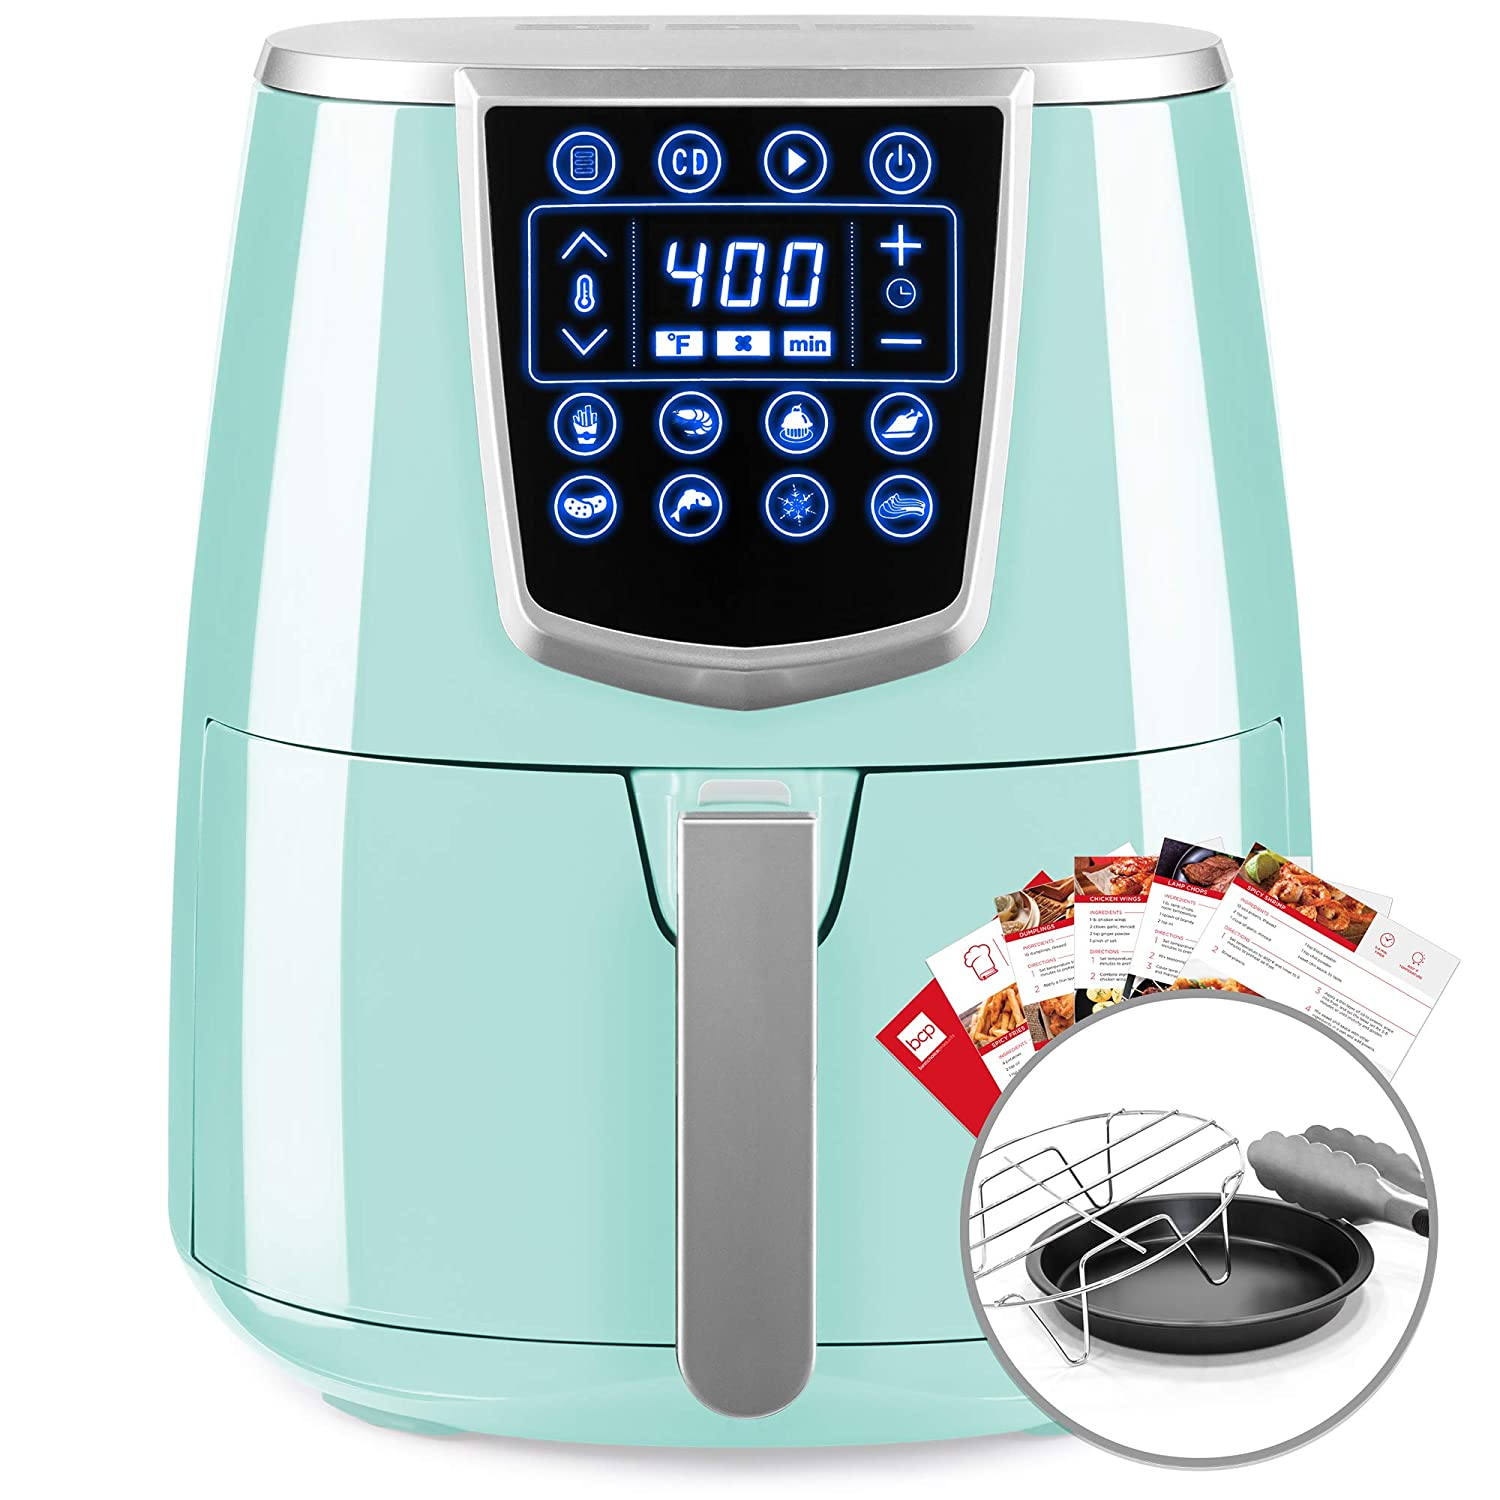 Best Choice Products 4.2qt 8-in-1 Digital Non-Stick Kitchen Air Fryer w/Timer, Rack, Tongs, Recipes - Seafoam Blue